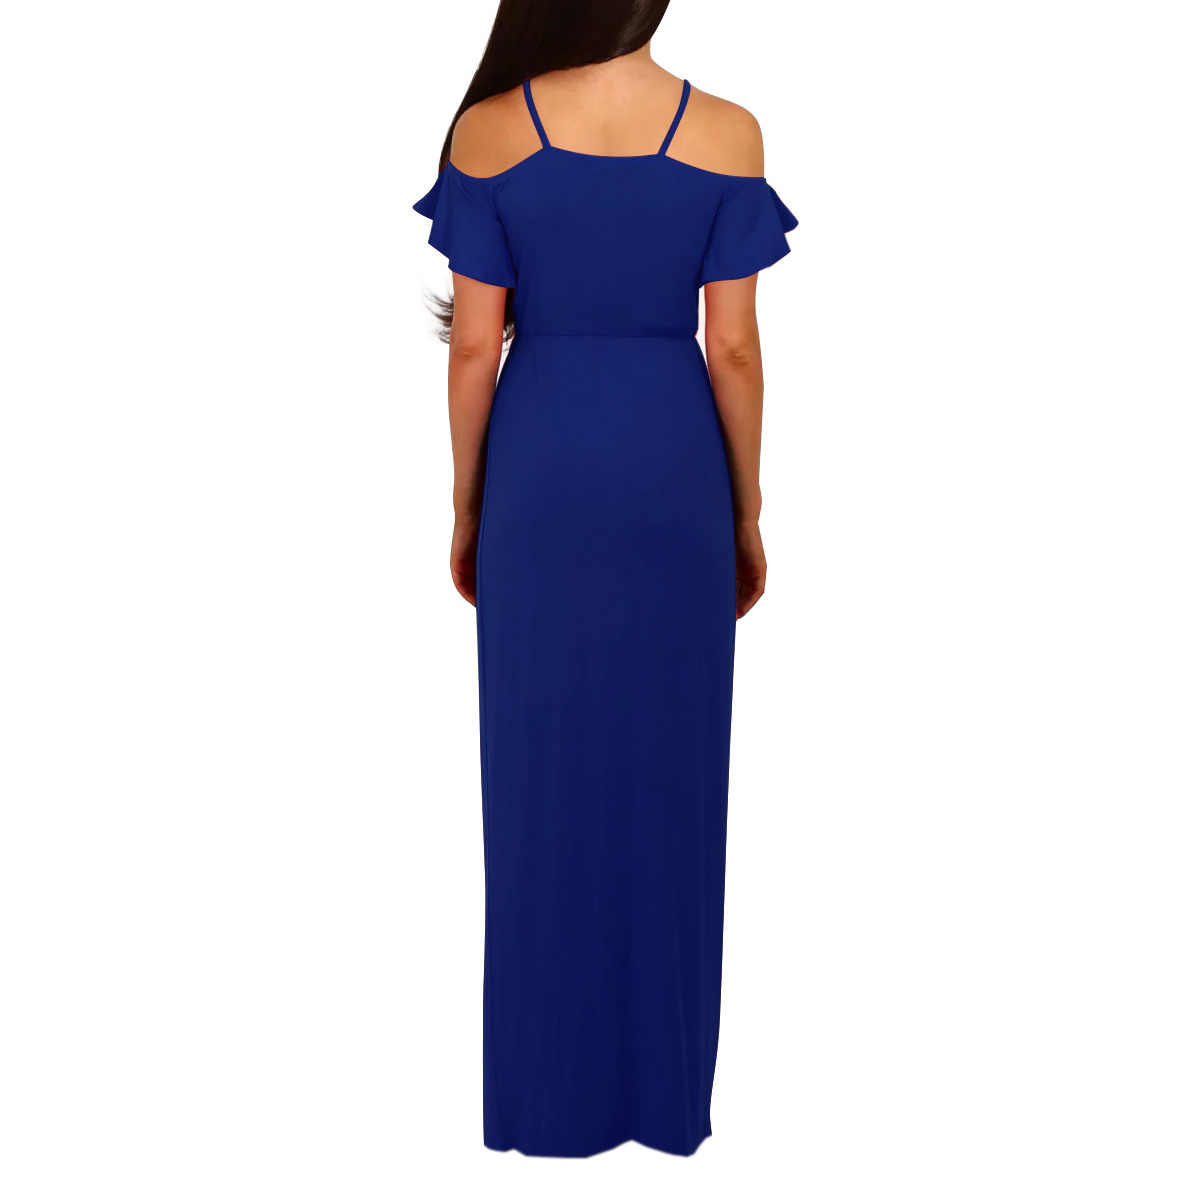 Women Party Dreses Short Sleeve V Neck Cold Shoulder Dresses Maxi Long Dress Split Sexy Dress Plus Size WS1111R